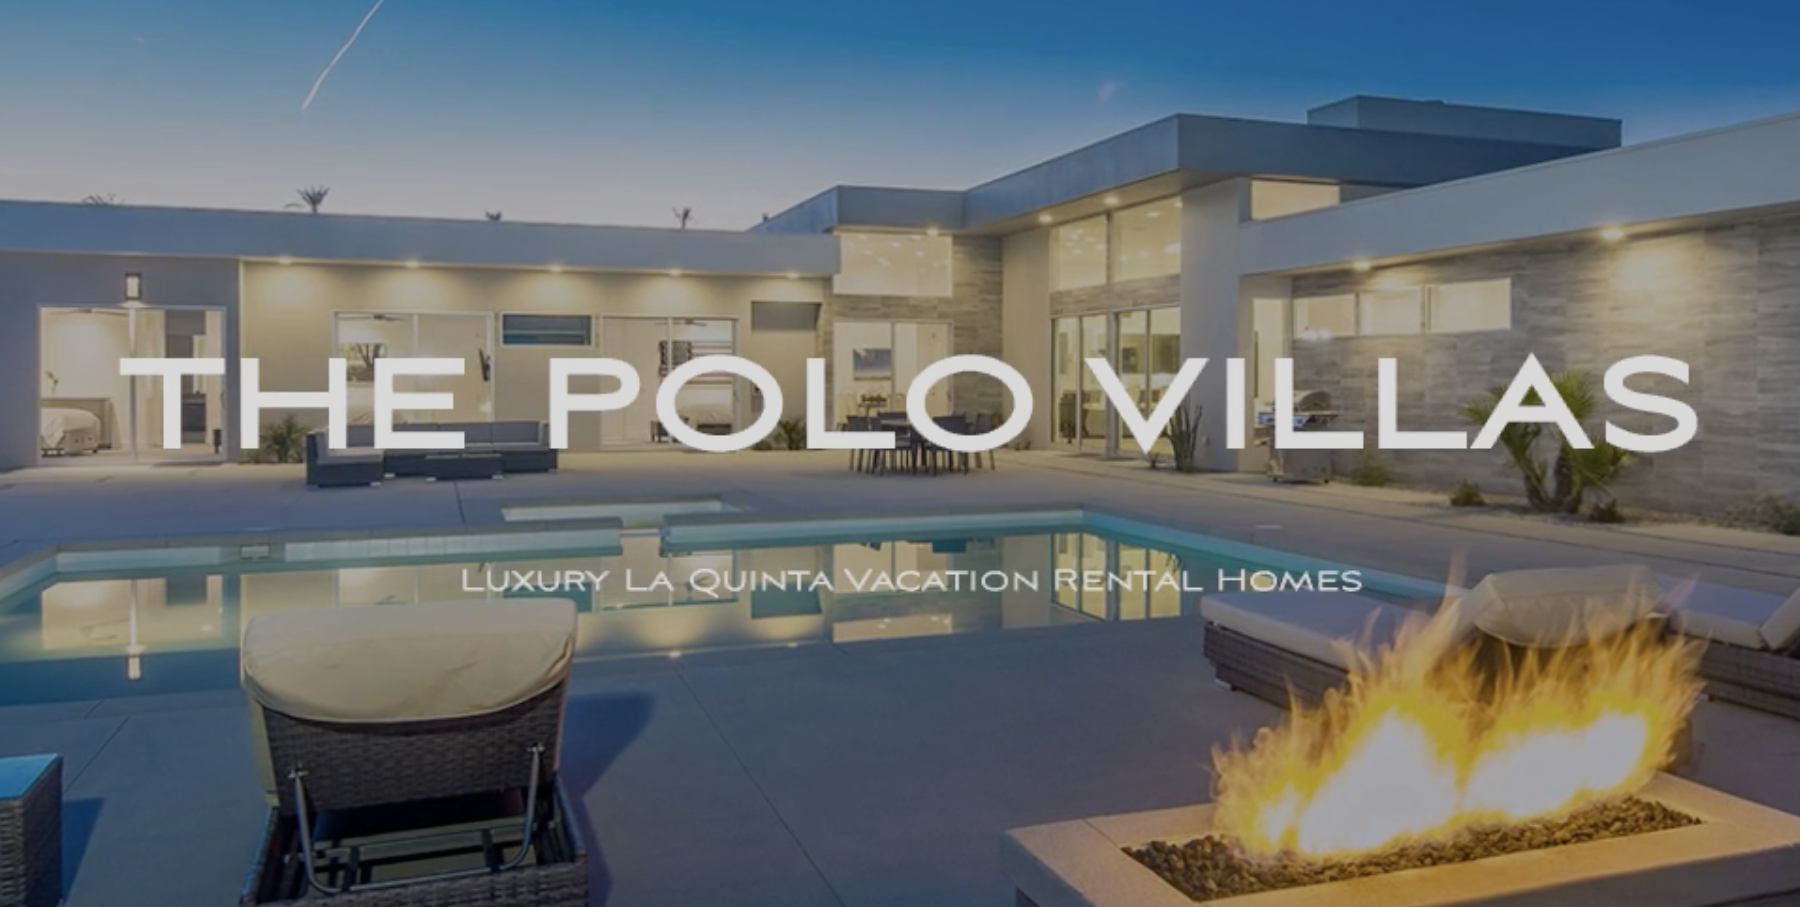 THE POLO VILLAS